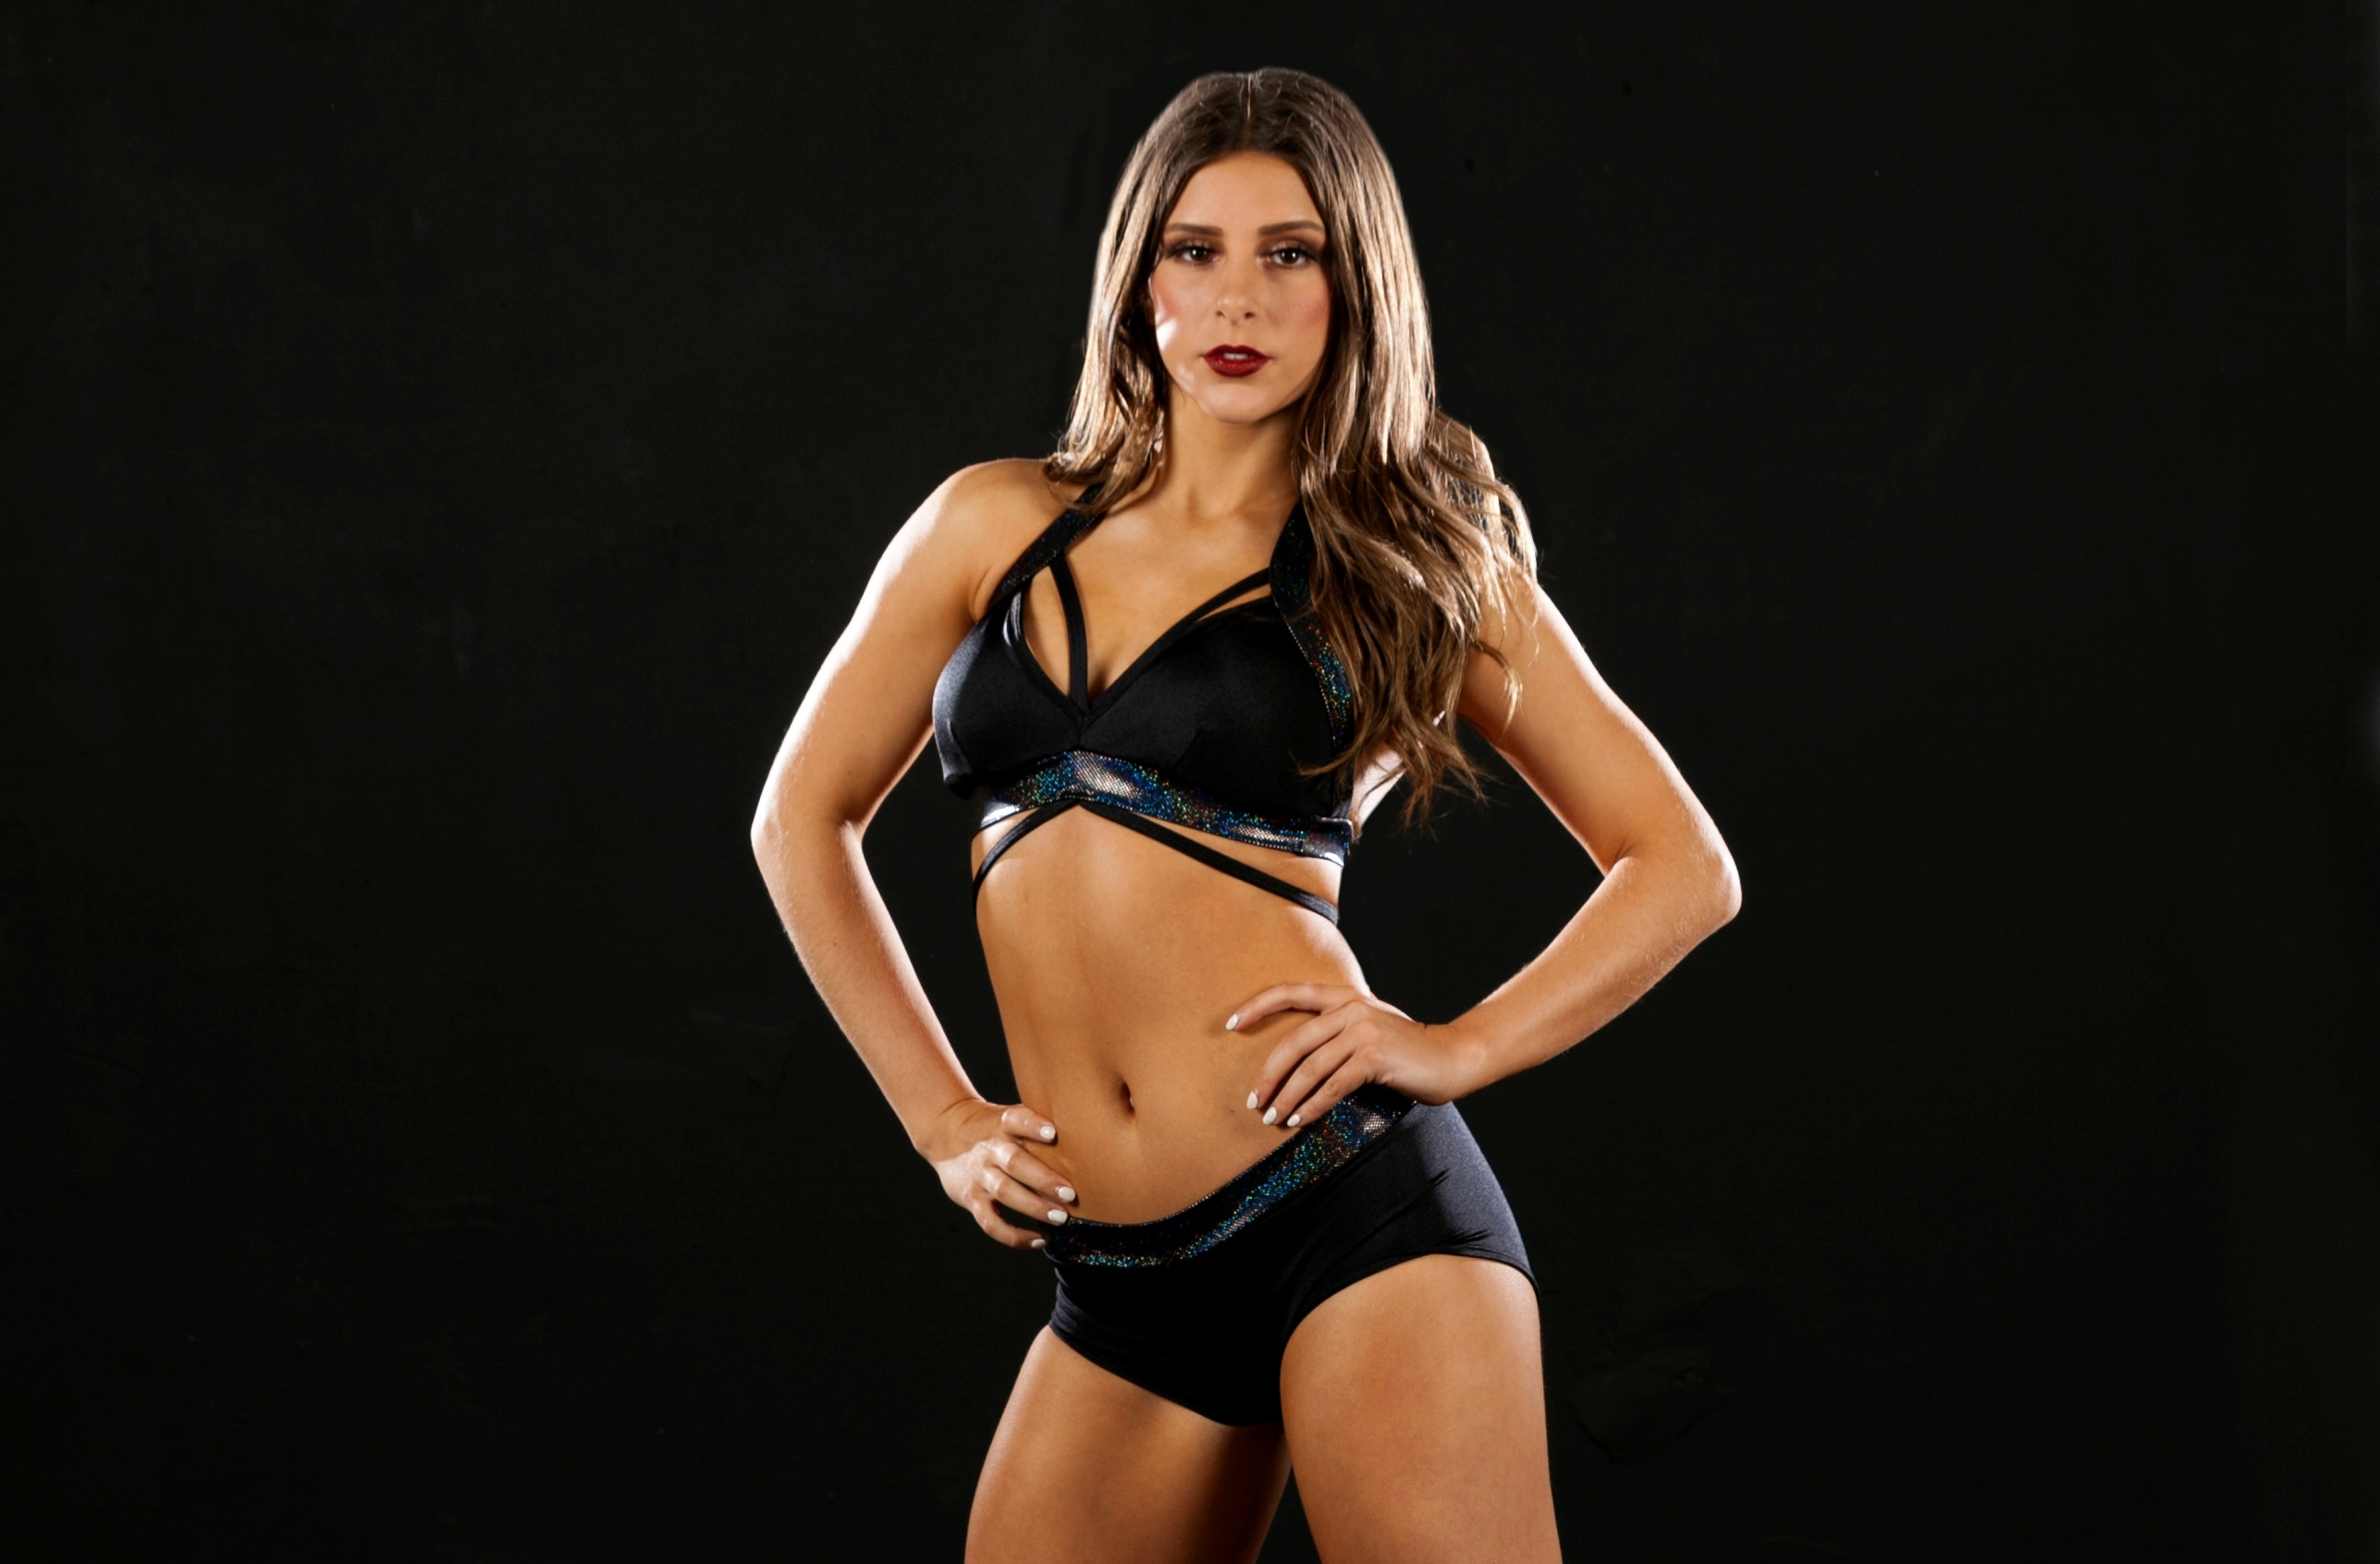 College and Pro Cheer Audition Wear - All Black tryout outfit